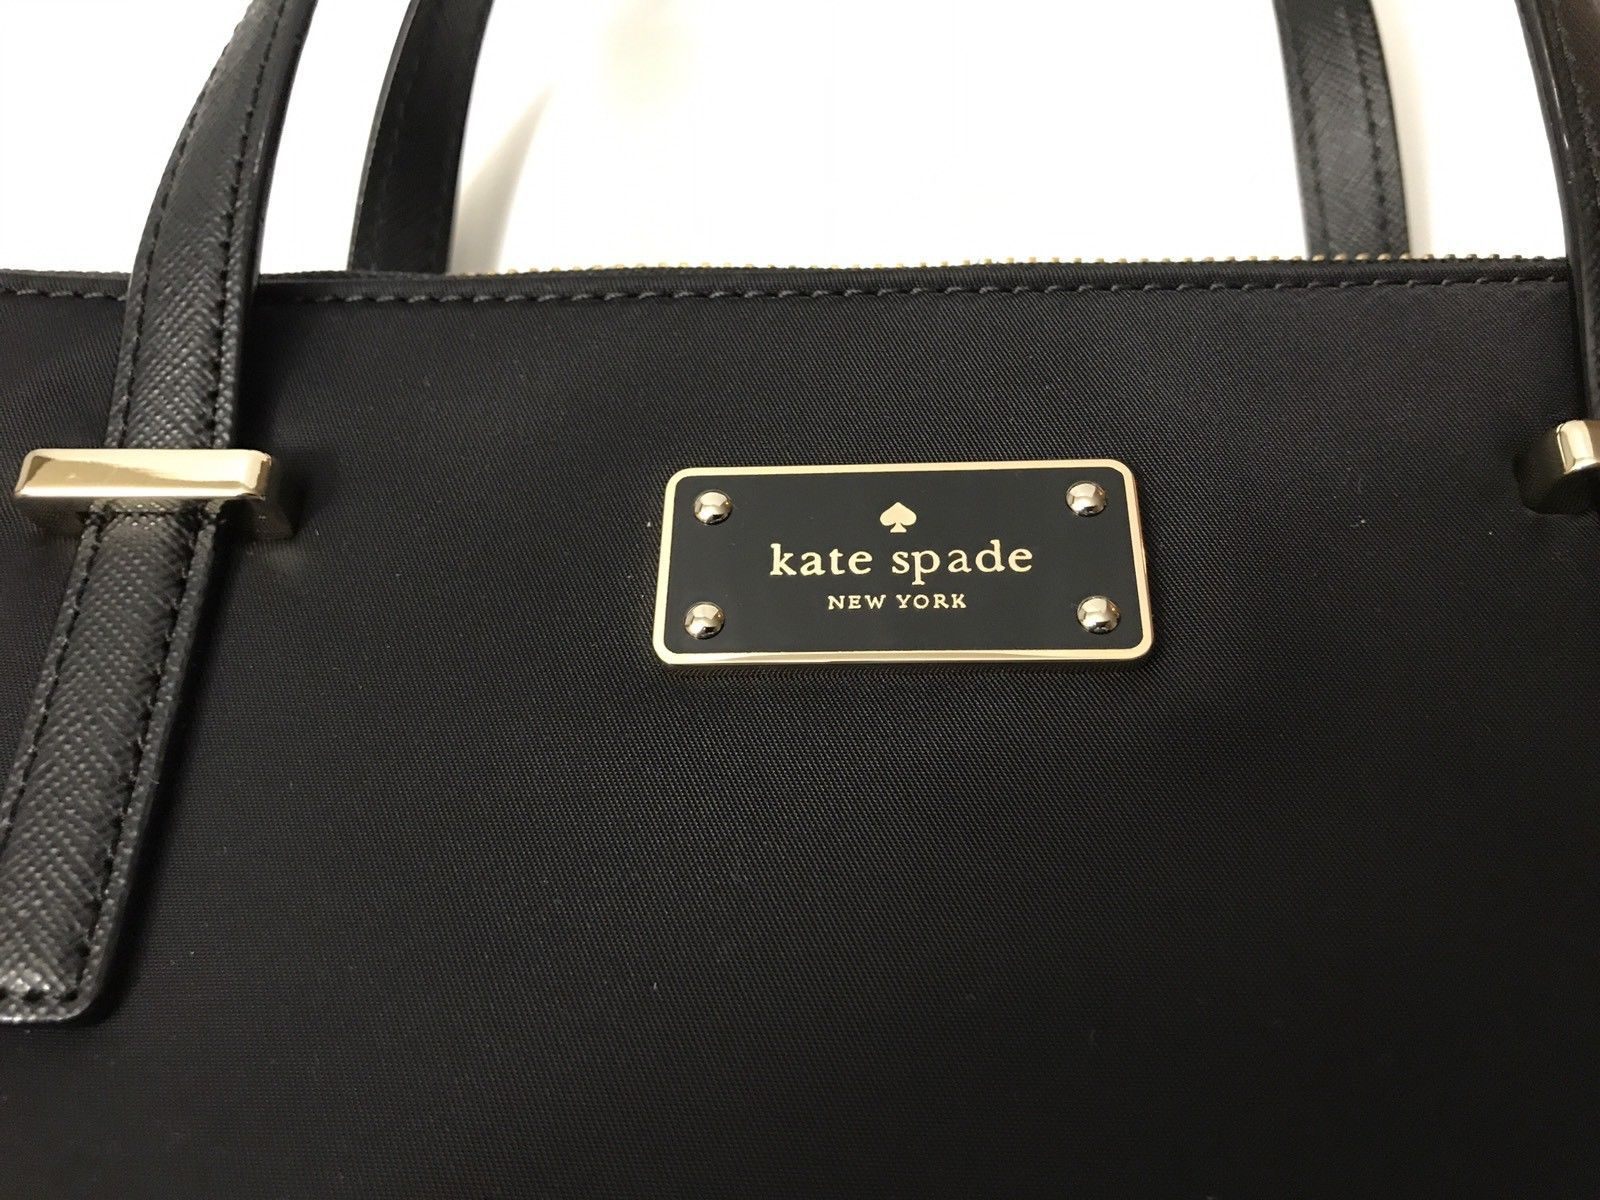 202860df4d ... NWT Kate Spade Wilson Road Alyse Shoulder HandBag Black Nylon Crosbody  WKRU4715 ...